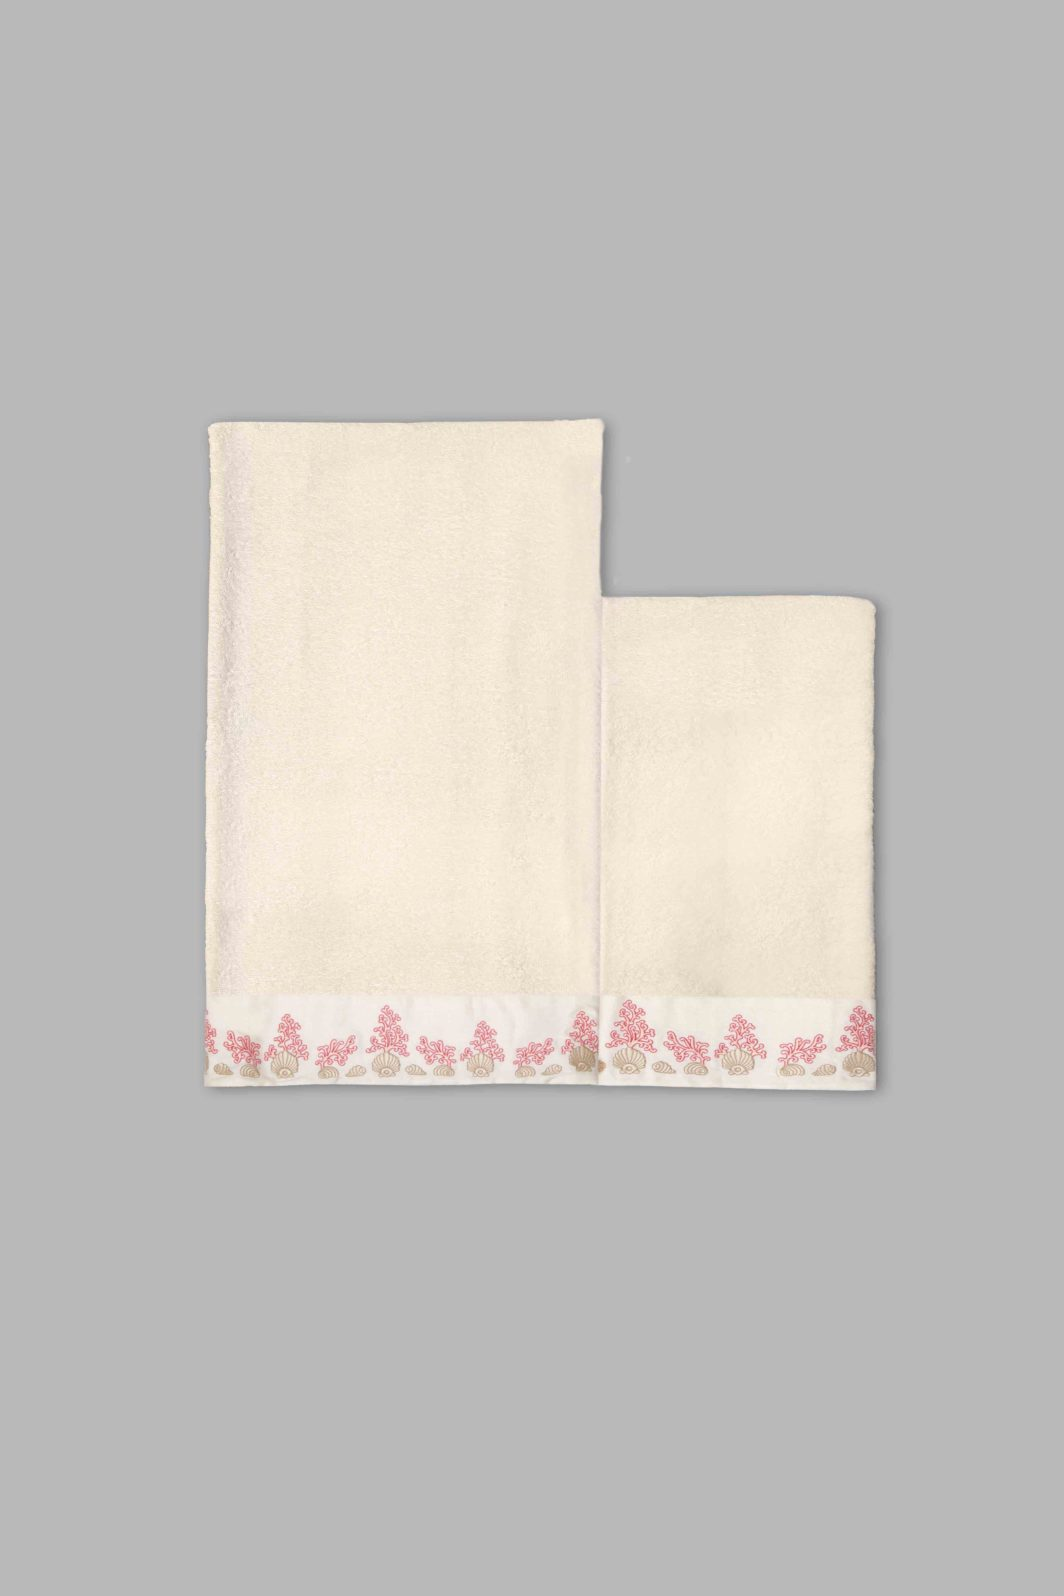 CORAL & SHELL BATH TOWELS SET - 2PCS